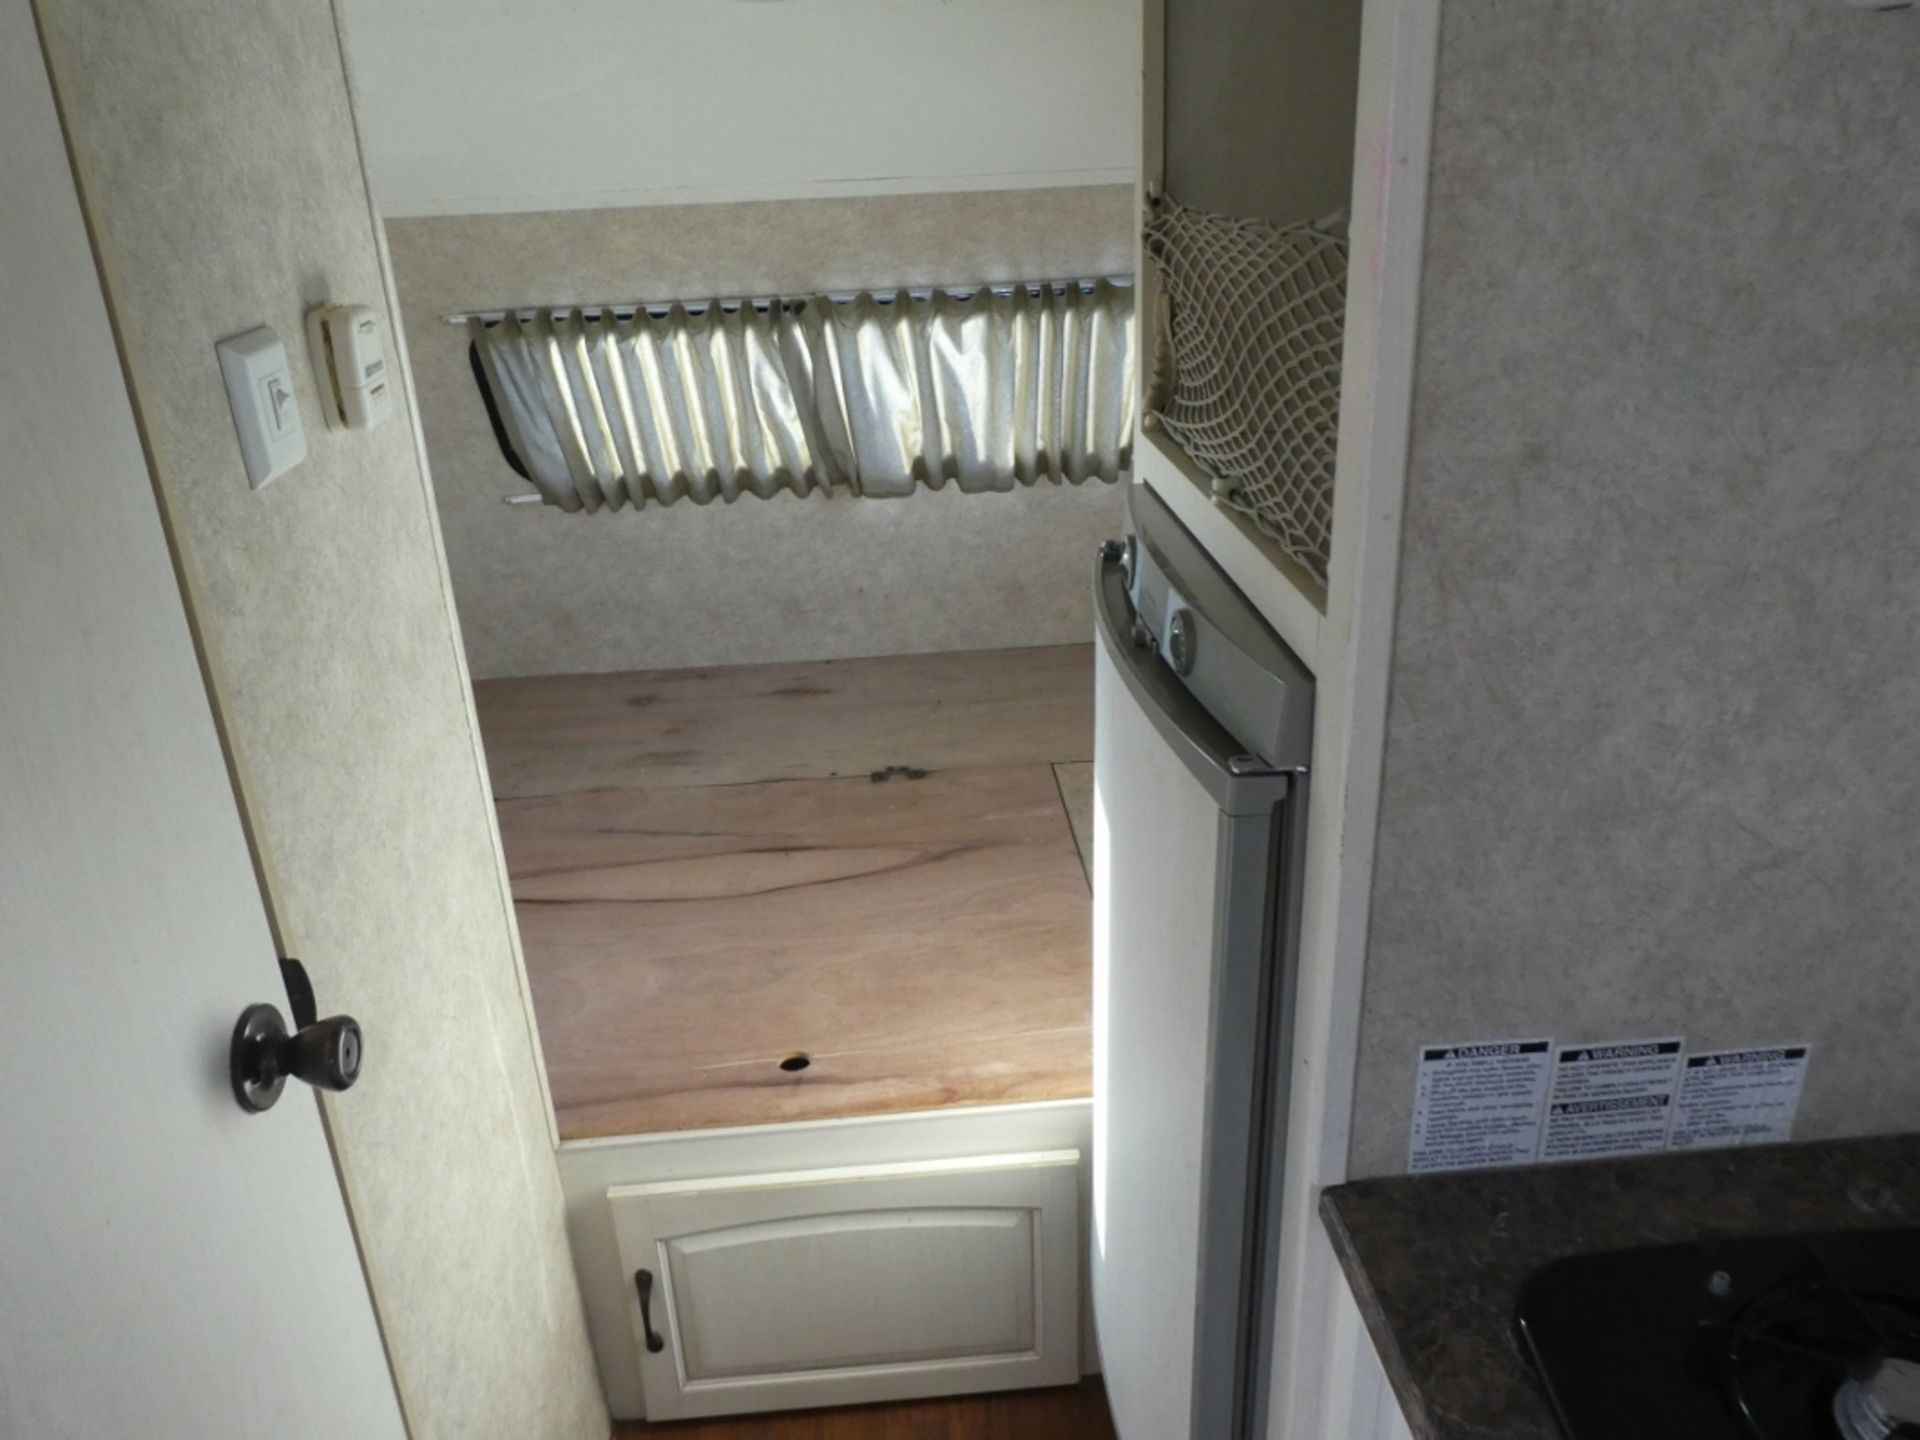 10/2008 FOREST RIVER R-POD S/A HOLIDAY TRAILER MODEL RP171 S/N 4X4TRP7151L004142 W/A/C, BATHROOM, - Image 8 of 12